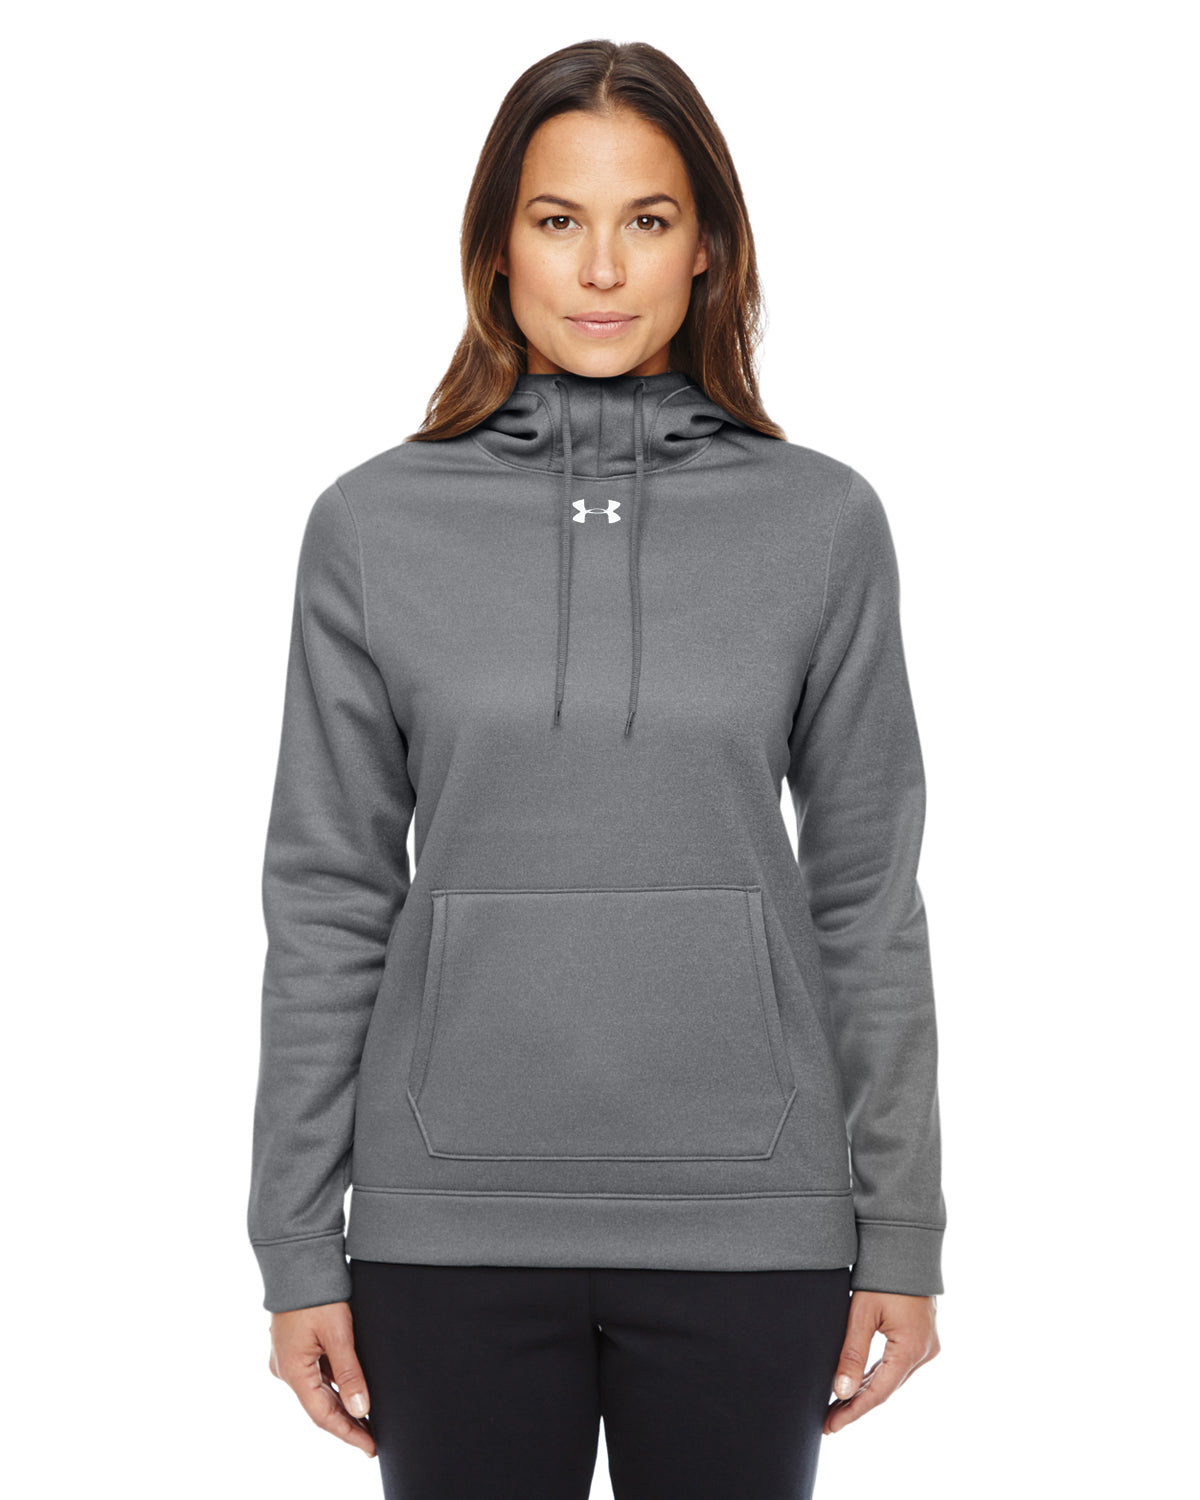 UNDER ARMOUR LADIES' FLEECE HOODY